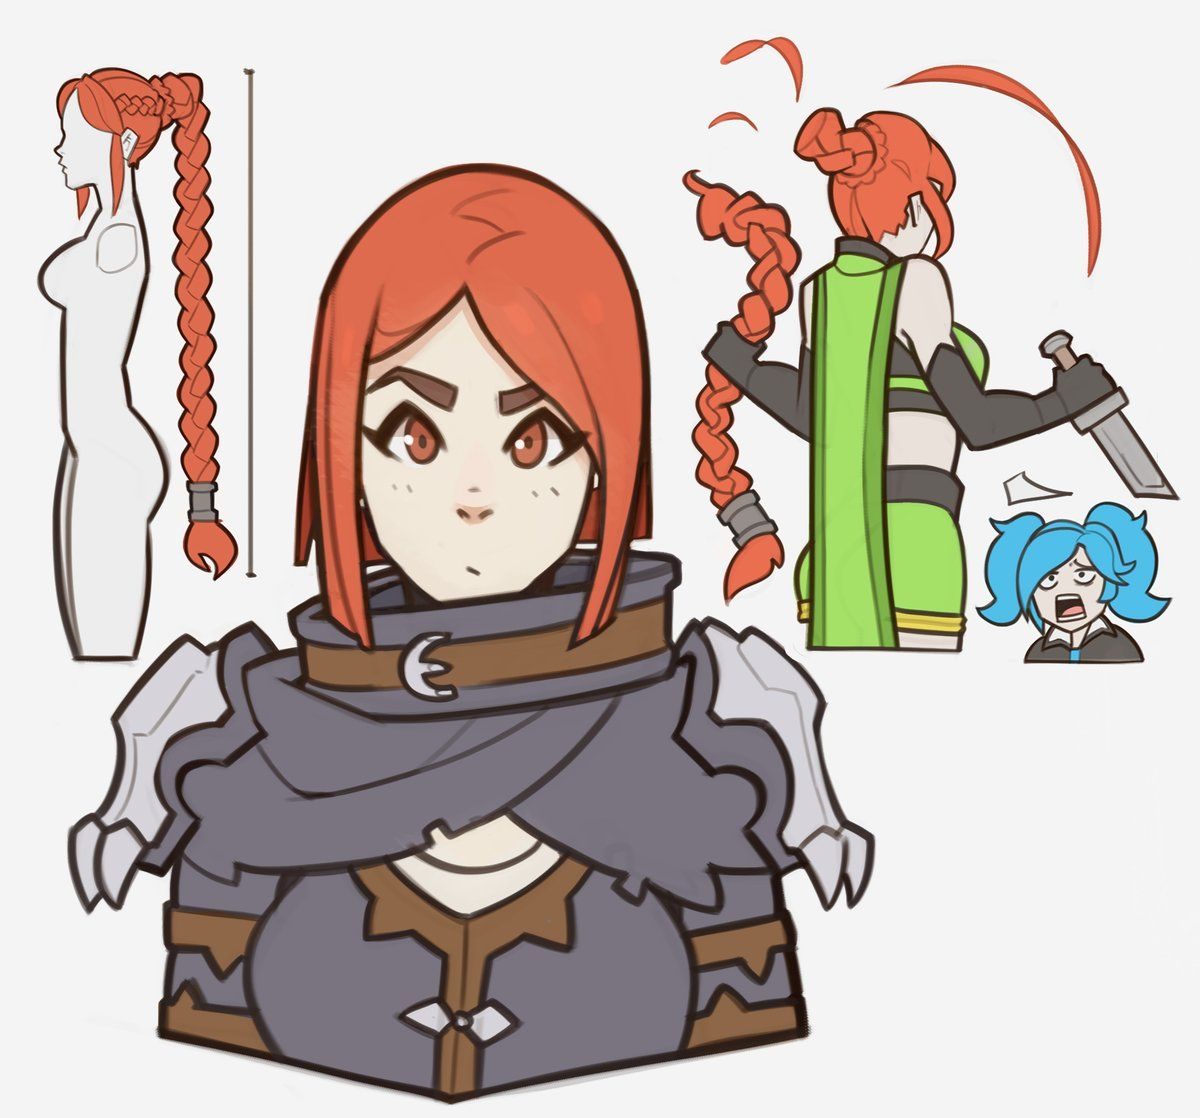 That Anime Thing When A Girl Cuts Her Hair By SplashBrush